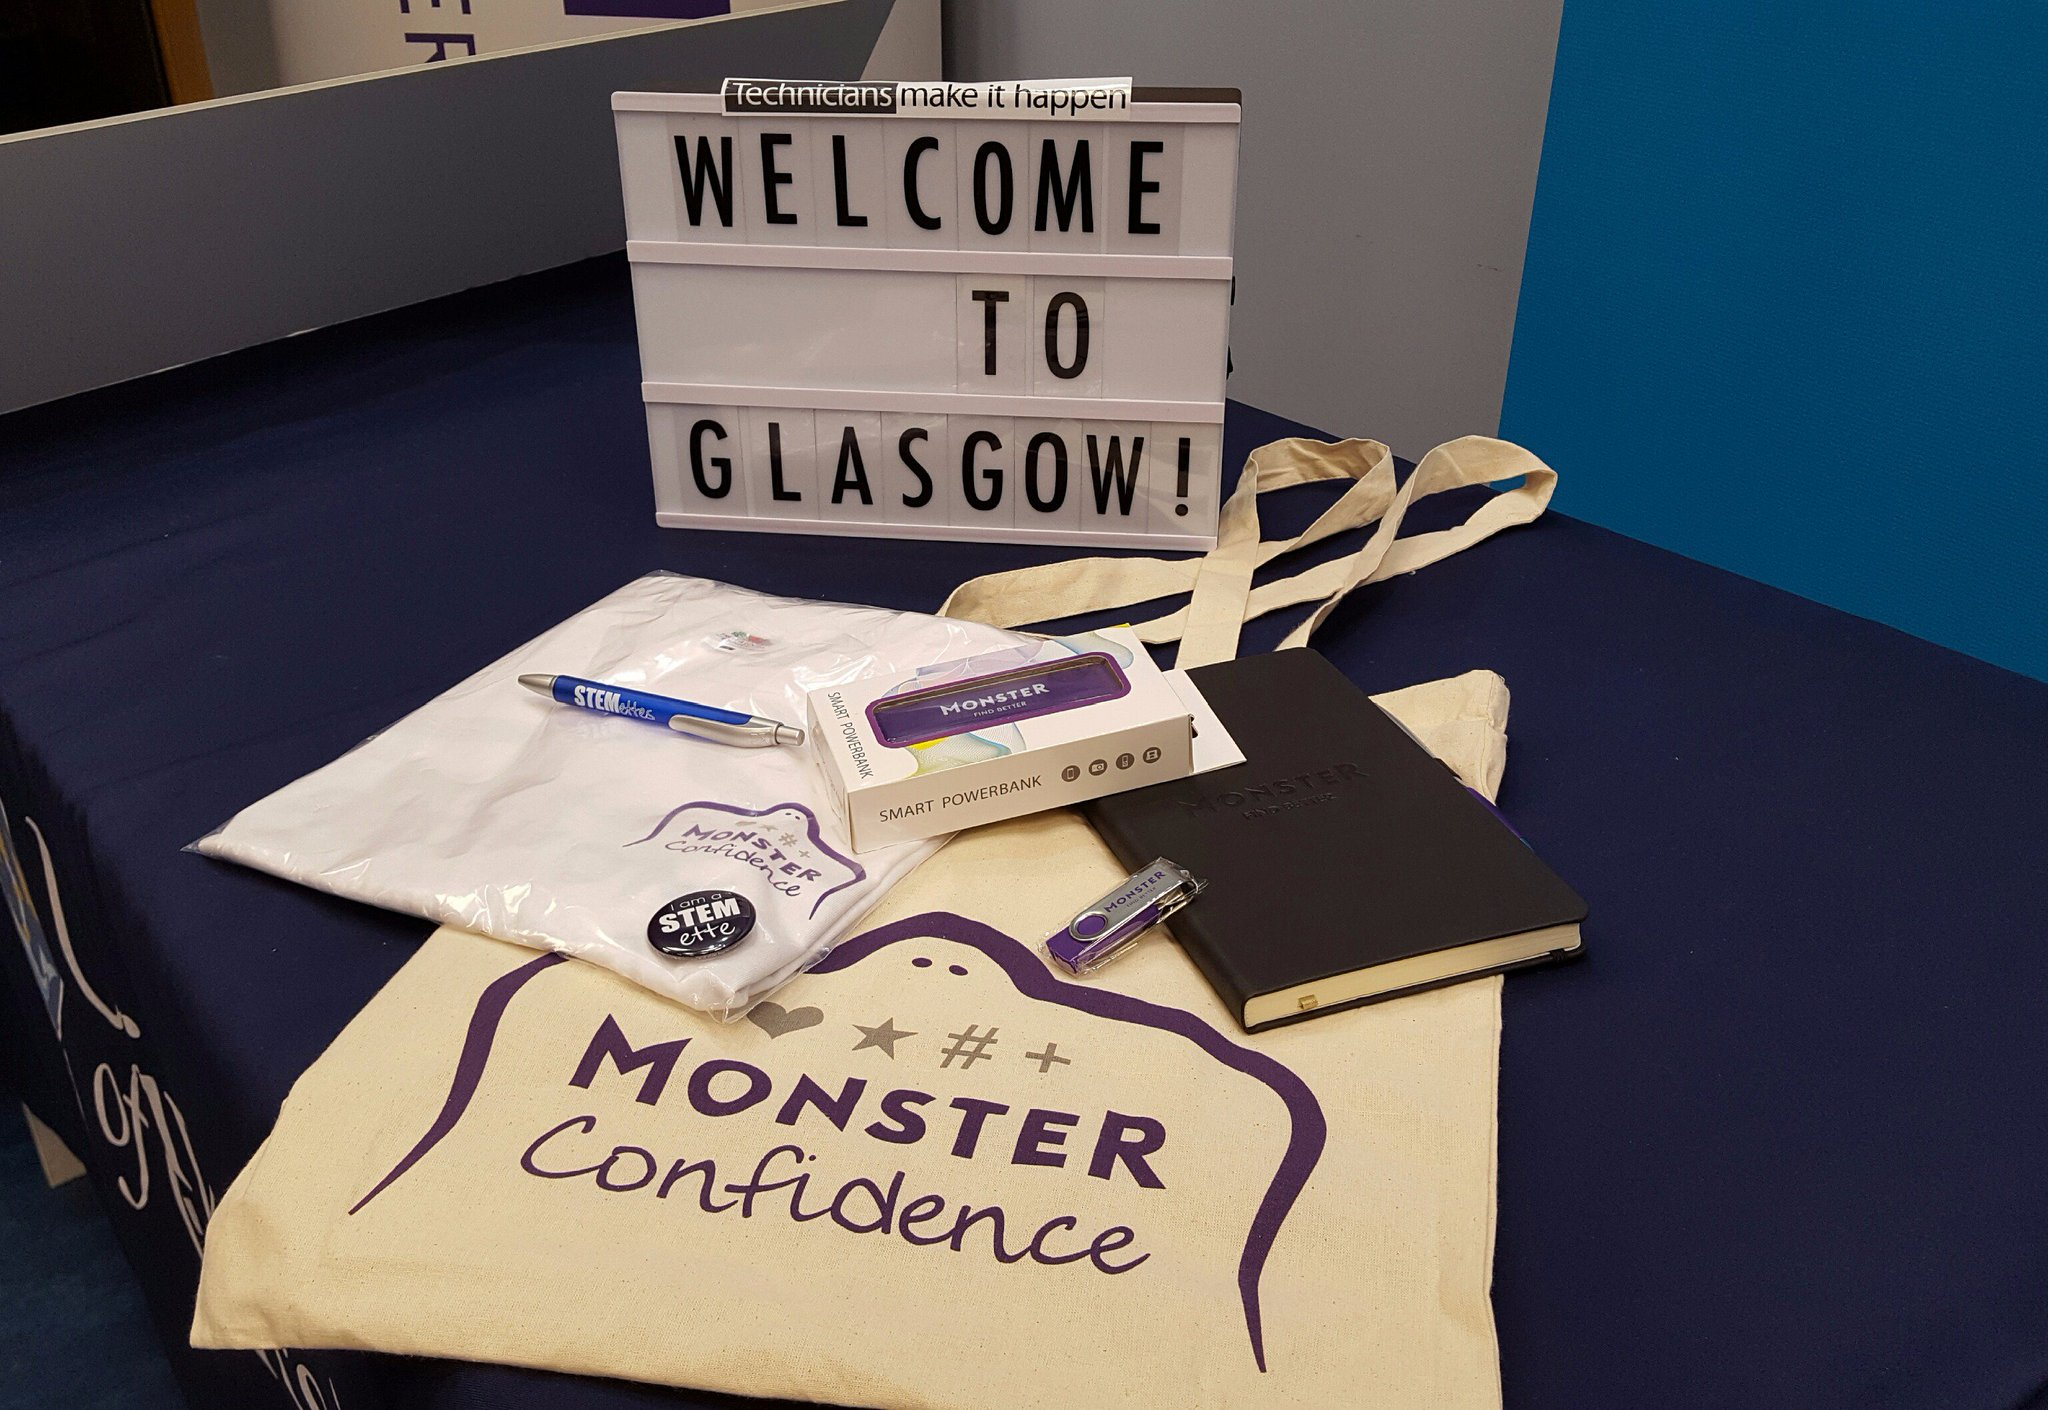 Great goody bag for all the school students taking part in #MonsterConfidence at UofG with @Stemettes #WomenInSTEM https://t.co/U1CAnNFEuo